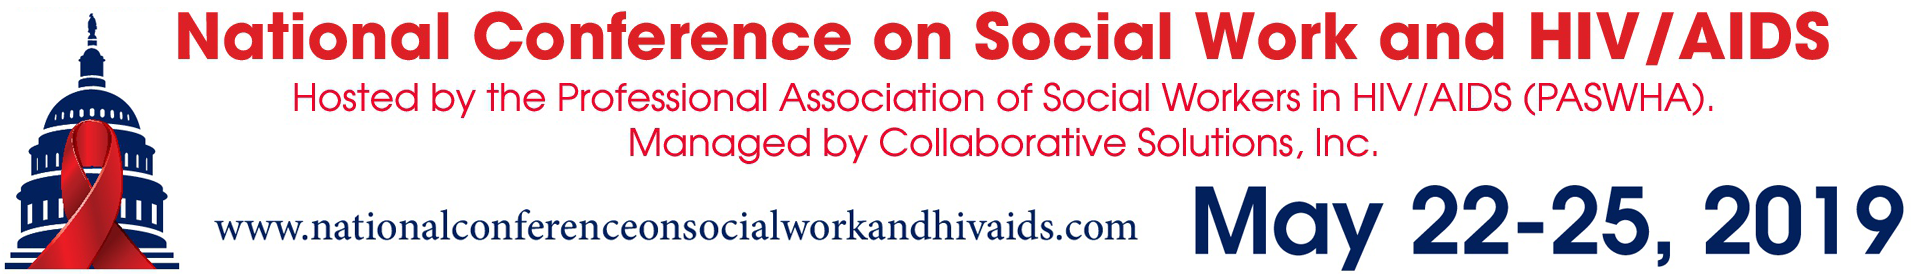 2019 National Conference on Social Work and HIV/AIDS Event Banner